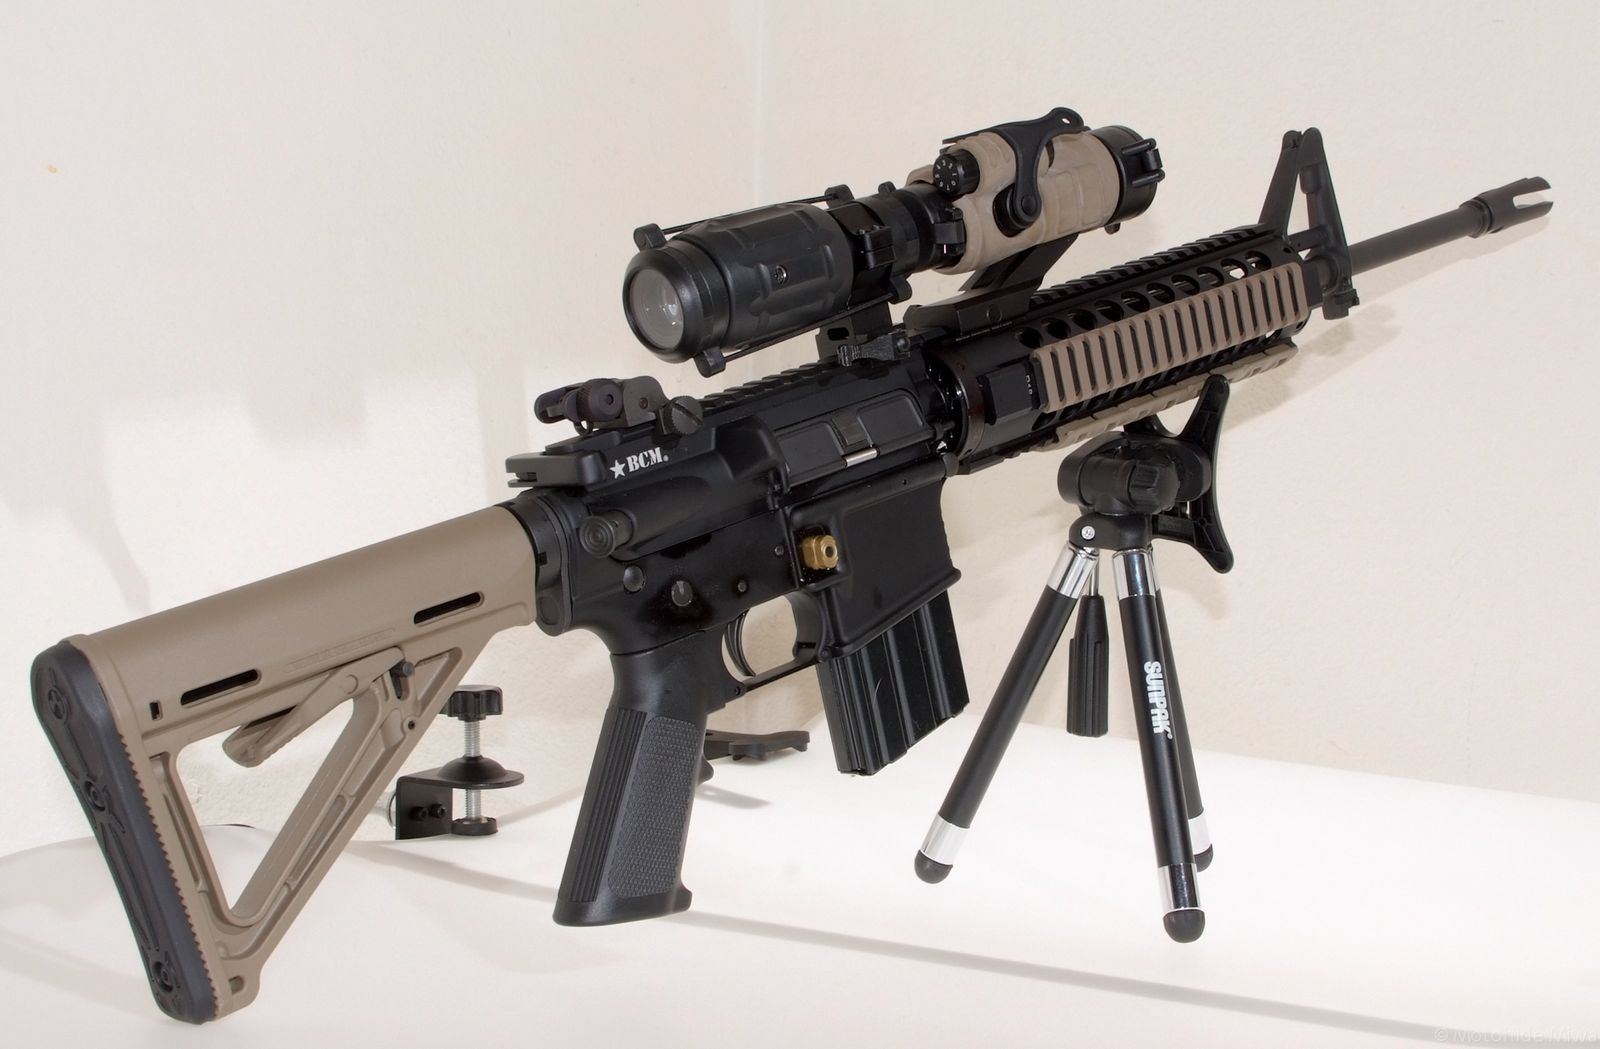 Best Ar 15 For The Money 2020 Decided: Here Are the 10 Best AR 15 Rifles of 2019 | The National